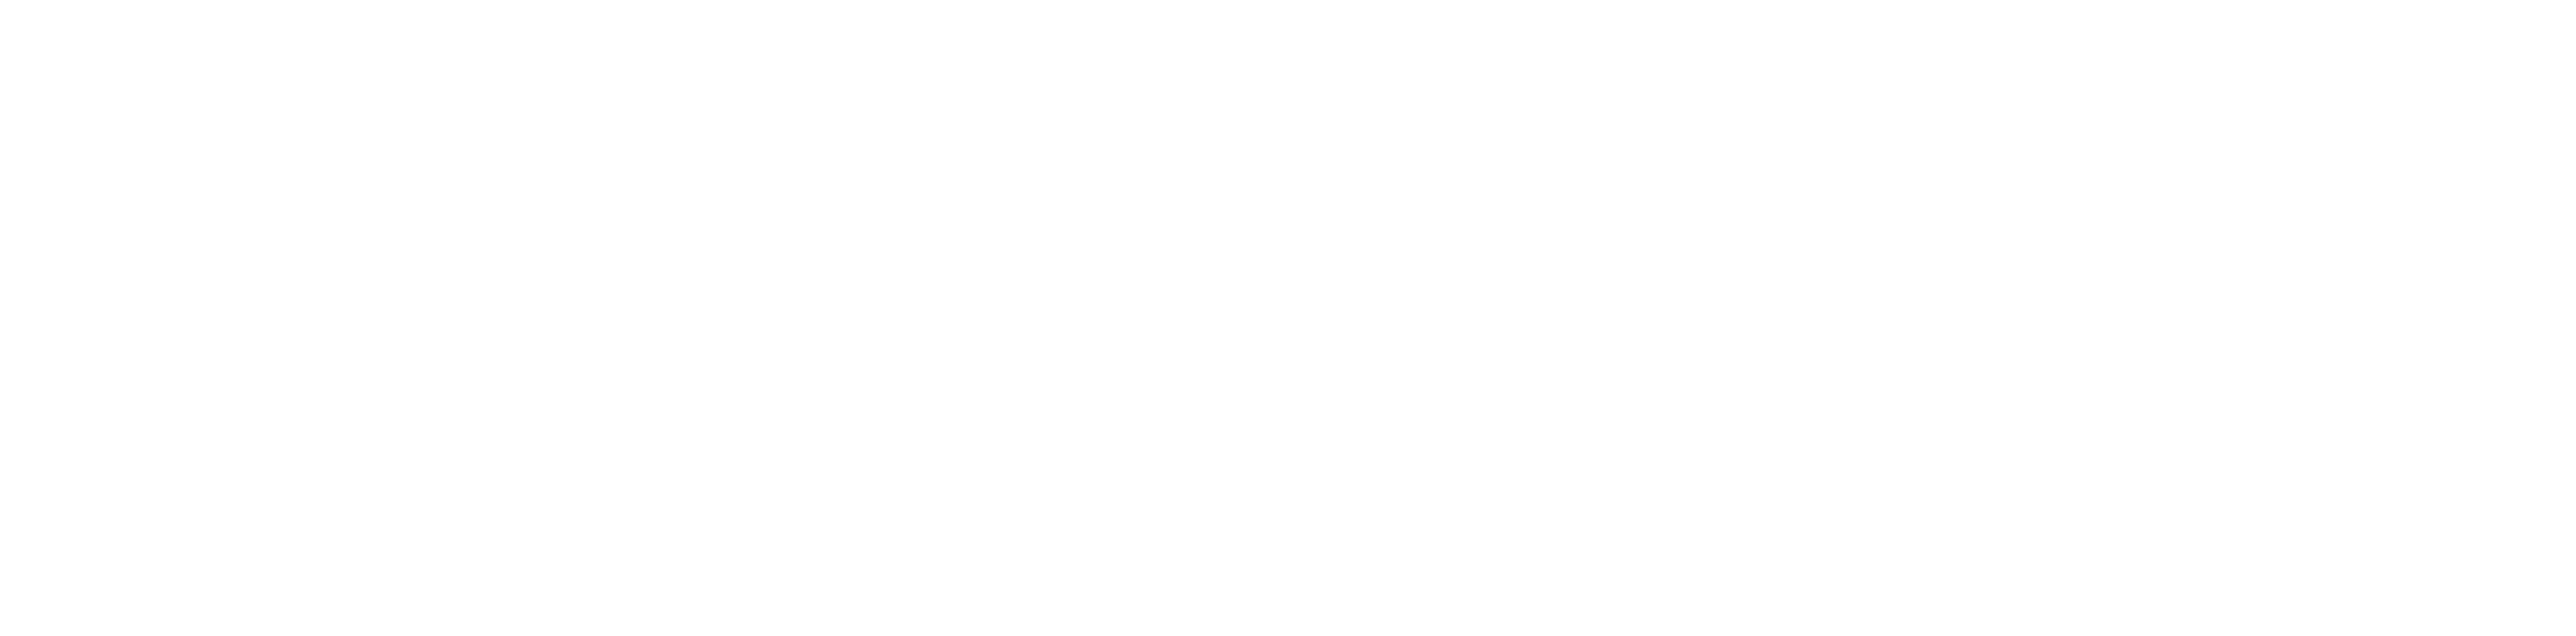 Metrologie Concepts Solutions